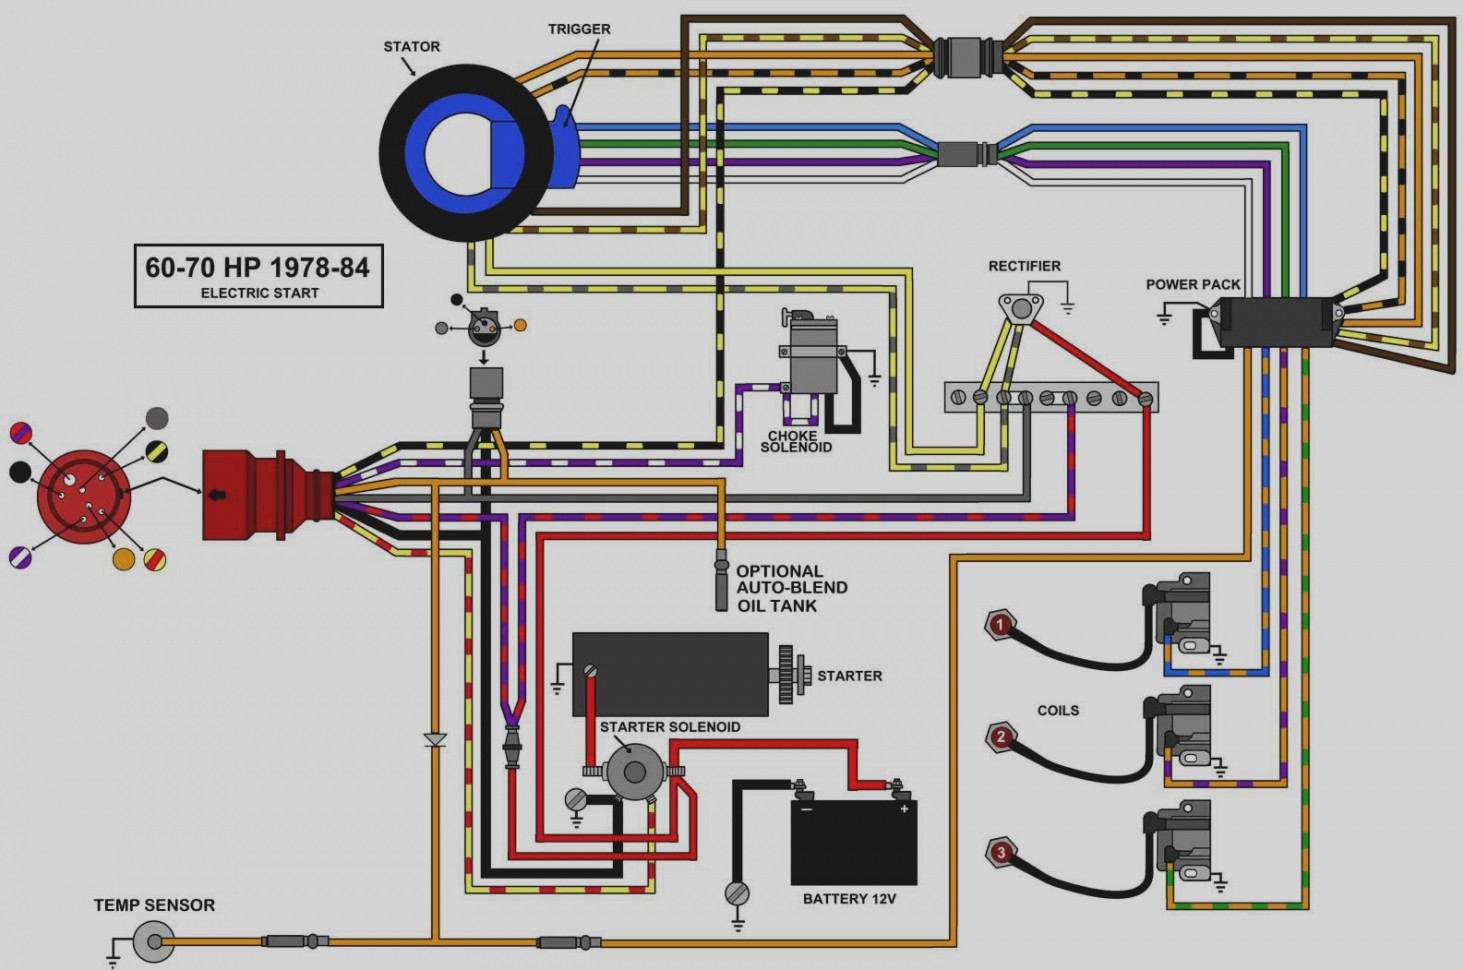 evinrude 28 spl ignition wiring diagram wiring diagram 48 Hp Evinrude Wiring Diagram 48 hp evinrude wiring diagram wiring